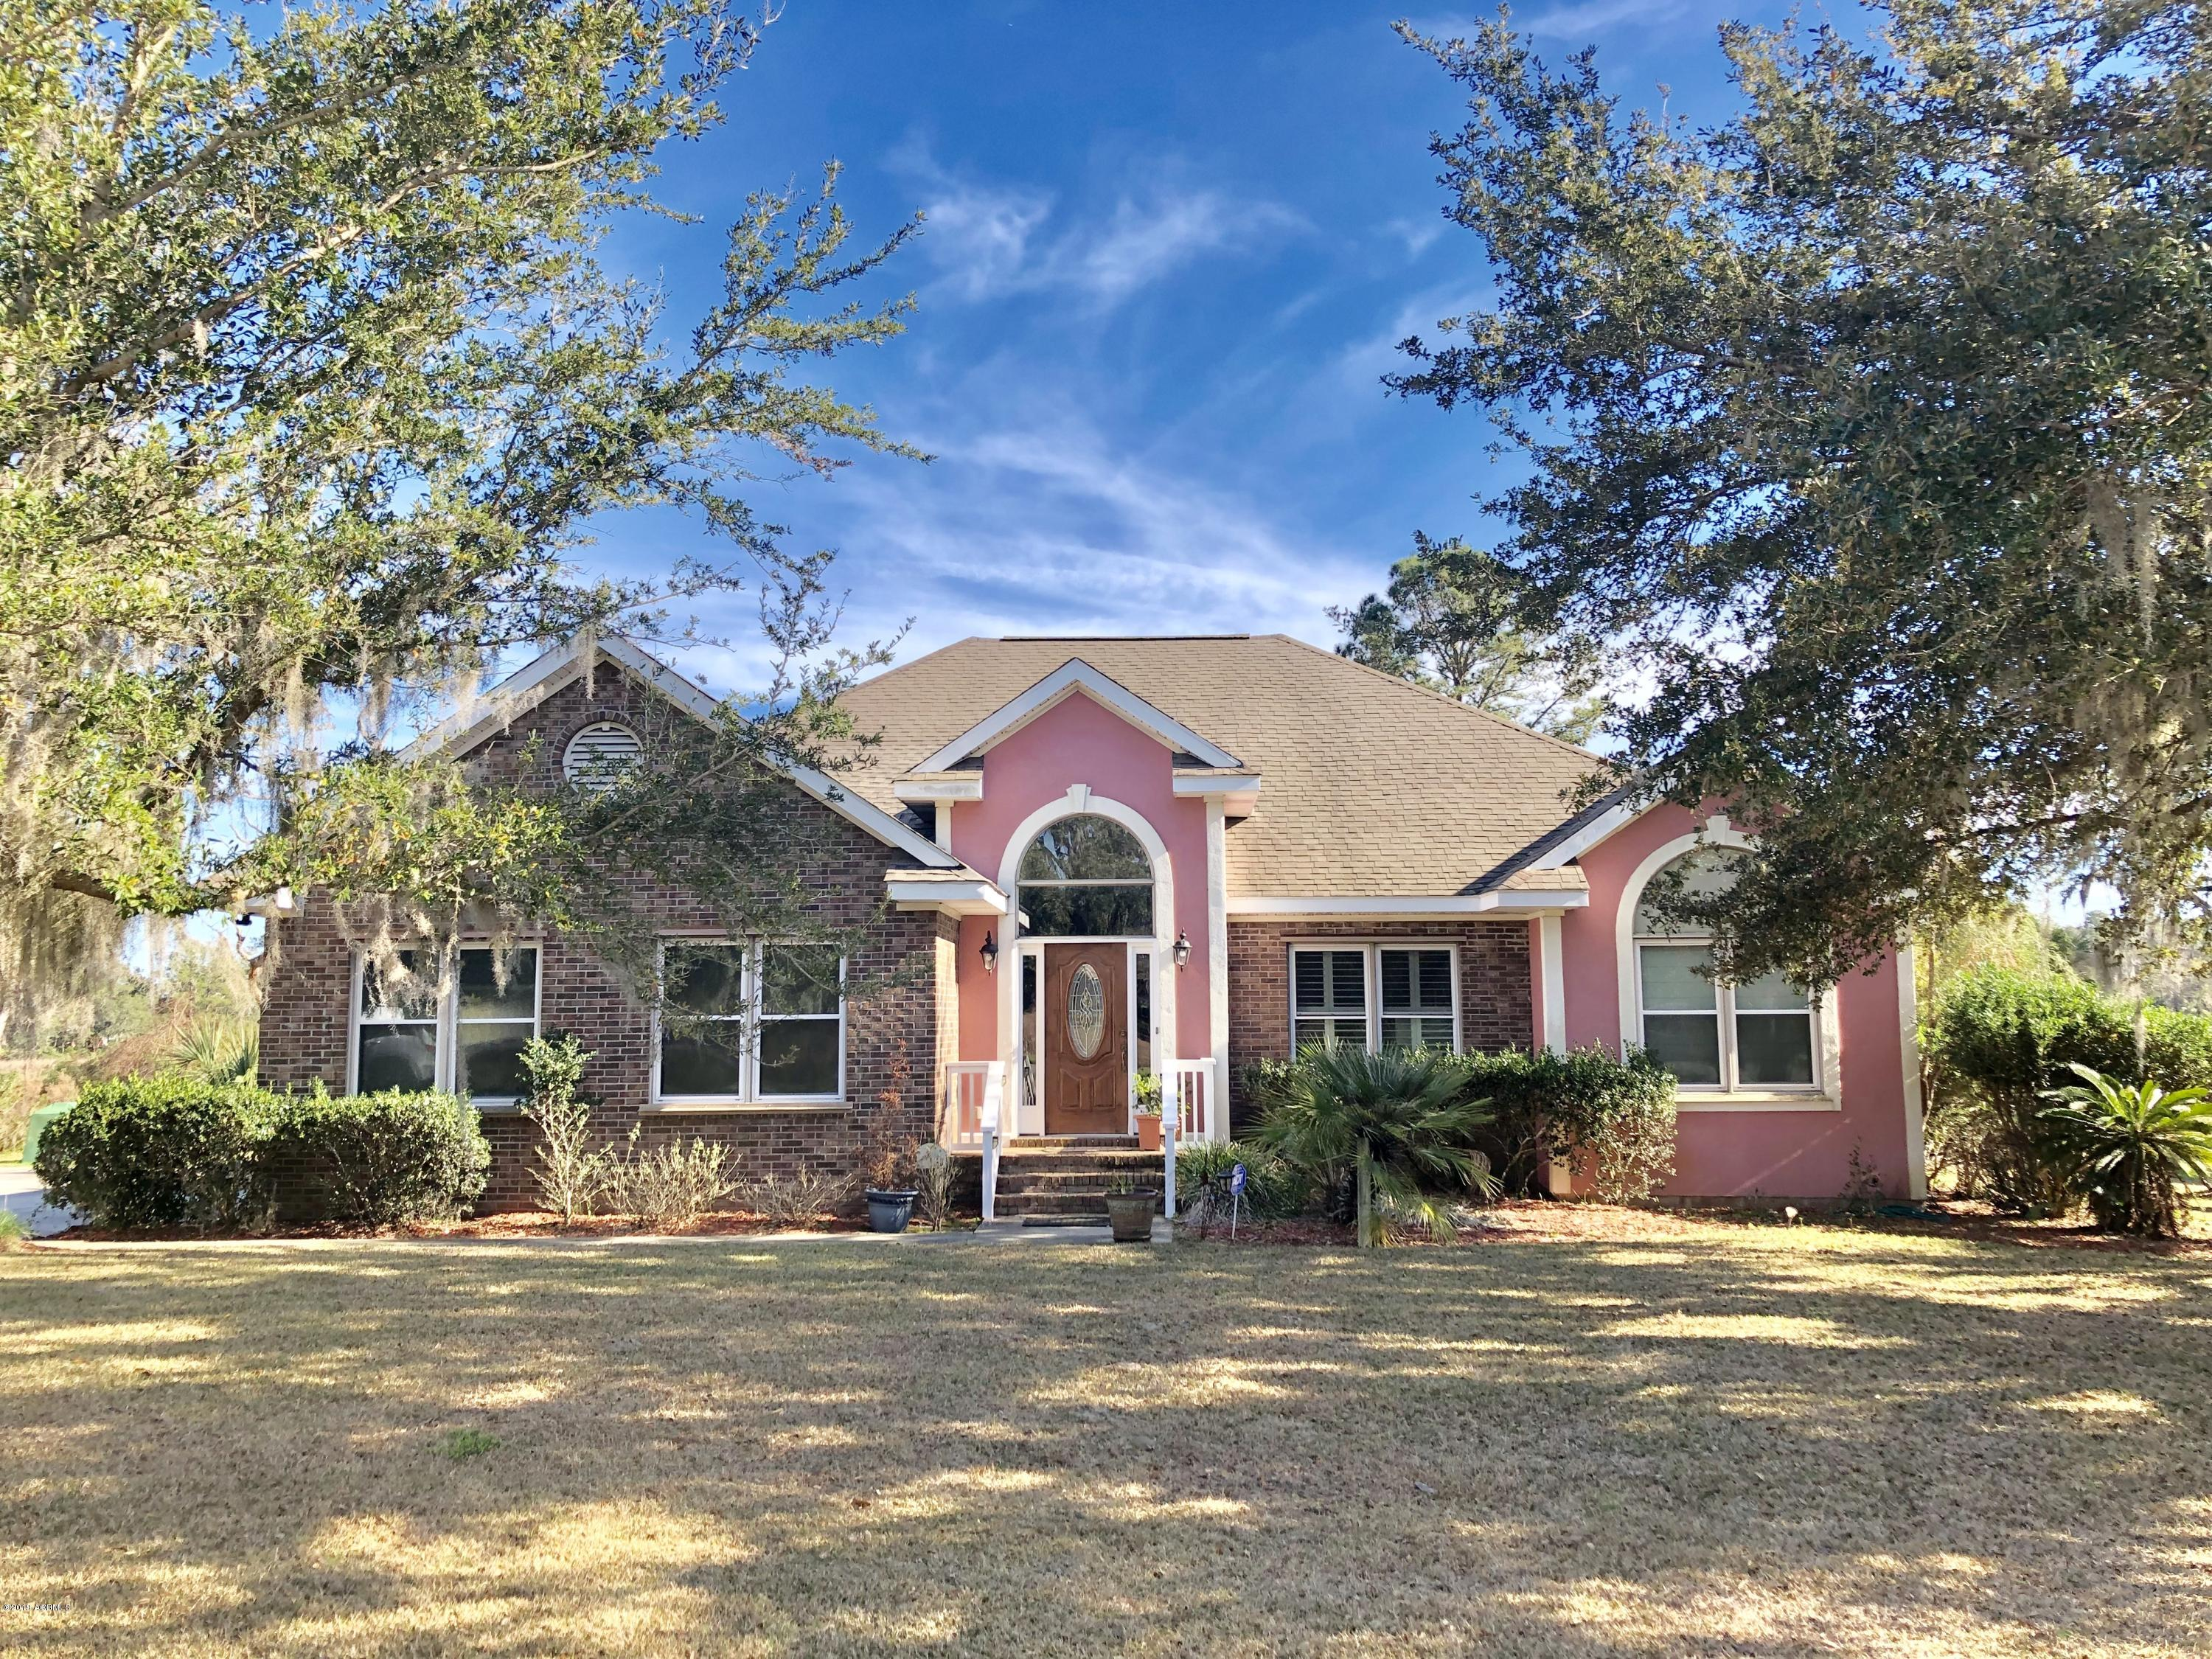 Photo of 1149 Otter Circle, Beaufort, SC 29906